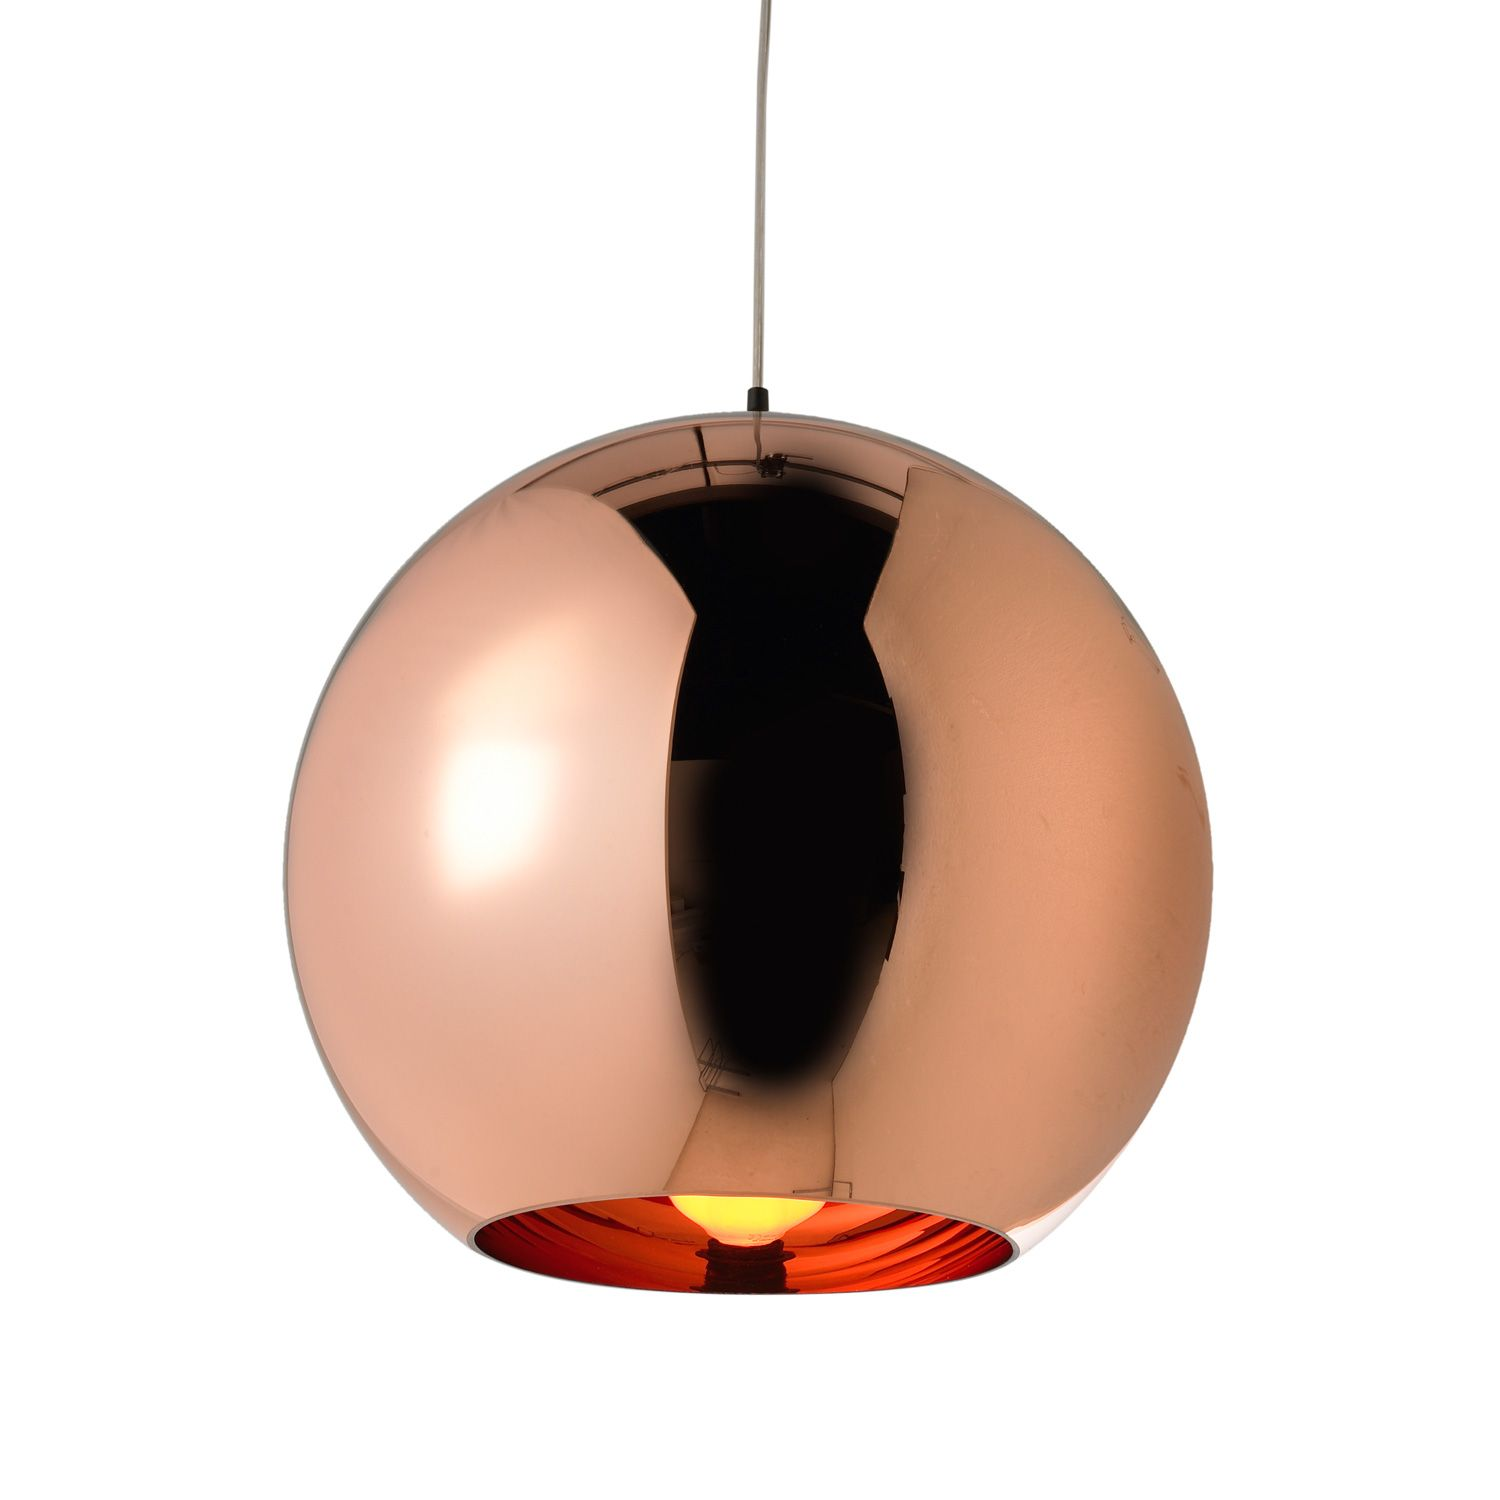 tom dixon style lighting. Retro Inspired Design Makes A Statement In The Replica Tom Dixon Copper Shade Pendant Light From Lucretia Lighting, Finishing Touch On Your Contemporary Style Lighting E